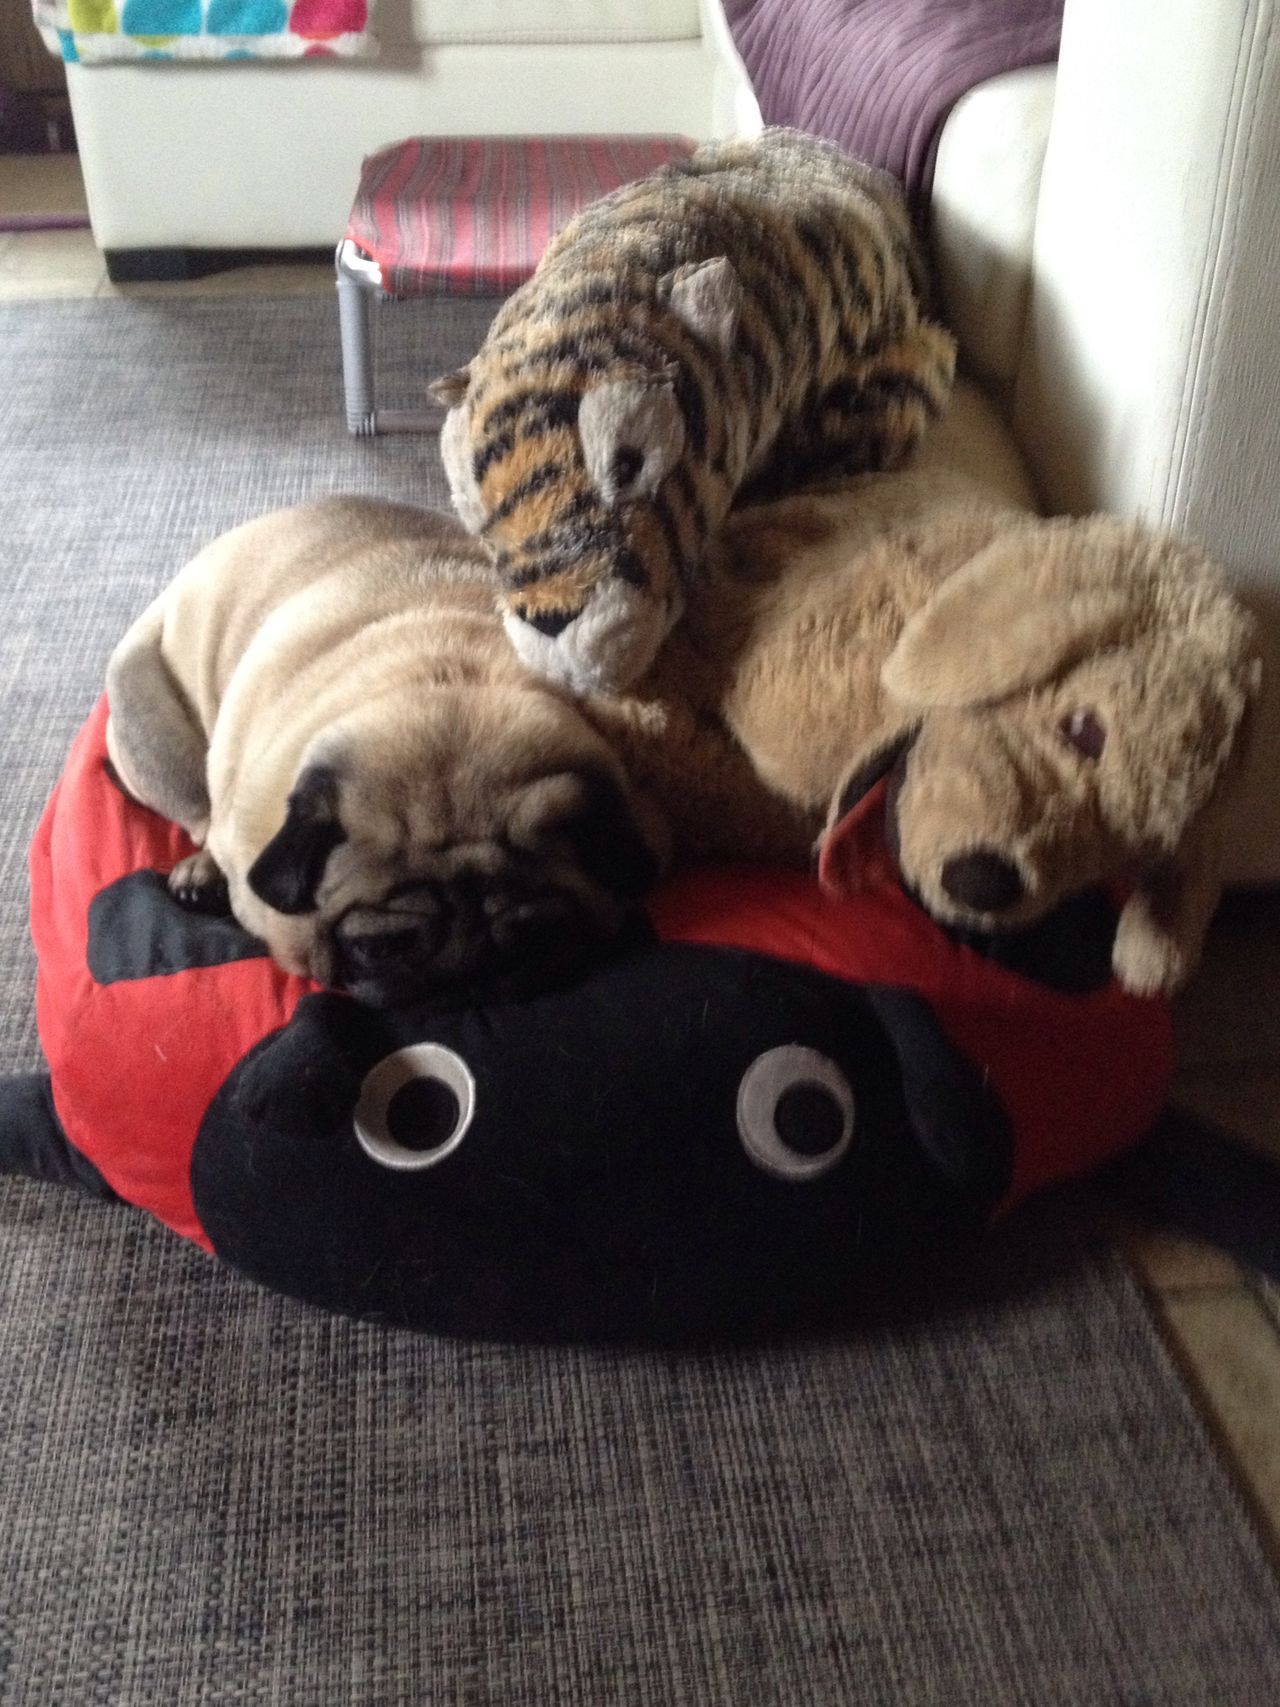 Peluche Relaxing Pug Mimetism Peluche Mimetismo Dormire Buffo Coccinella Intruso  SiestaTime Where Are You? Nanna Friends Rosso Carlino Pet Pets Pennichellapomeridiana Domenicadacoma Cuscino Pillow Cute Pets Pug Life  Pugs Puglife